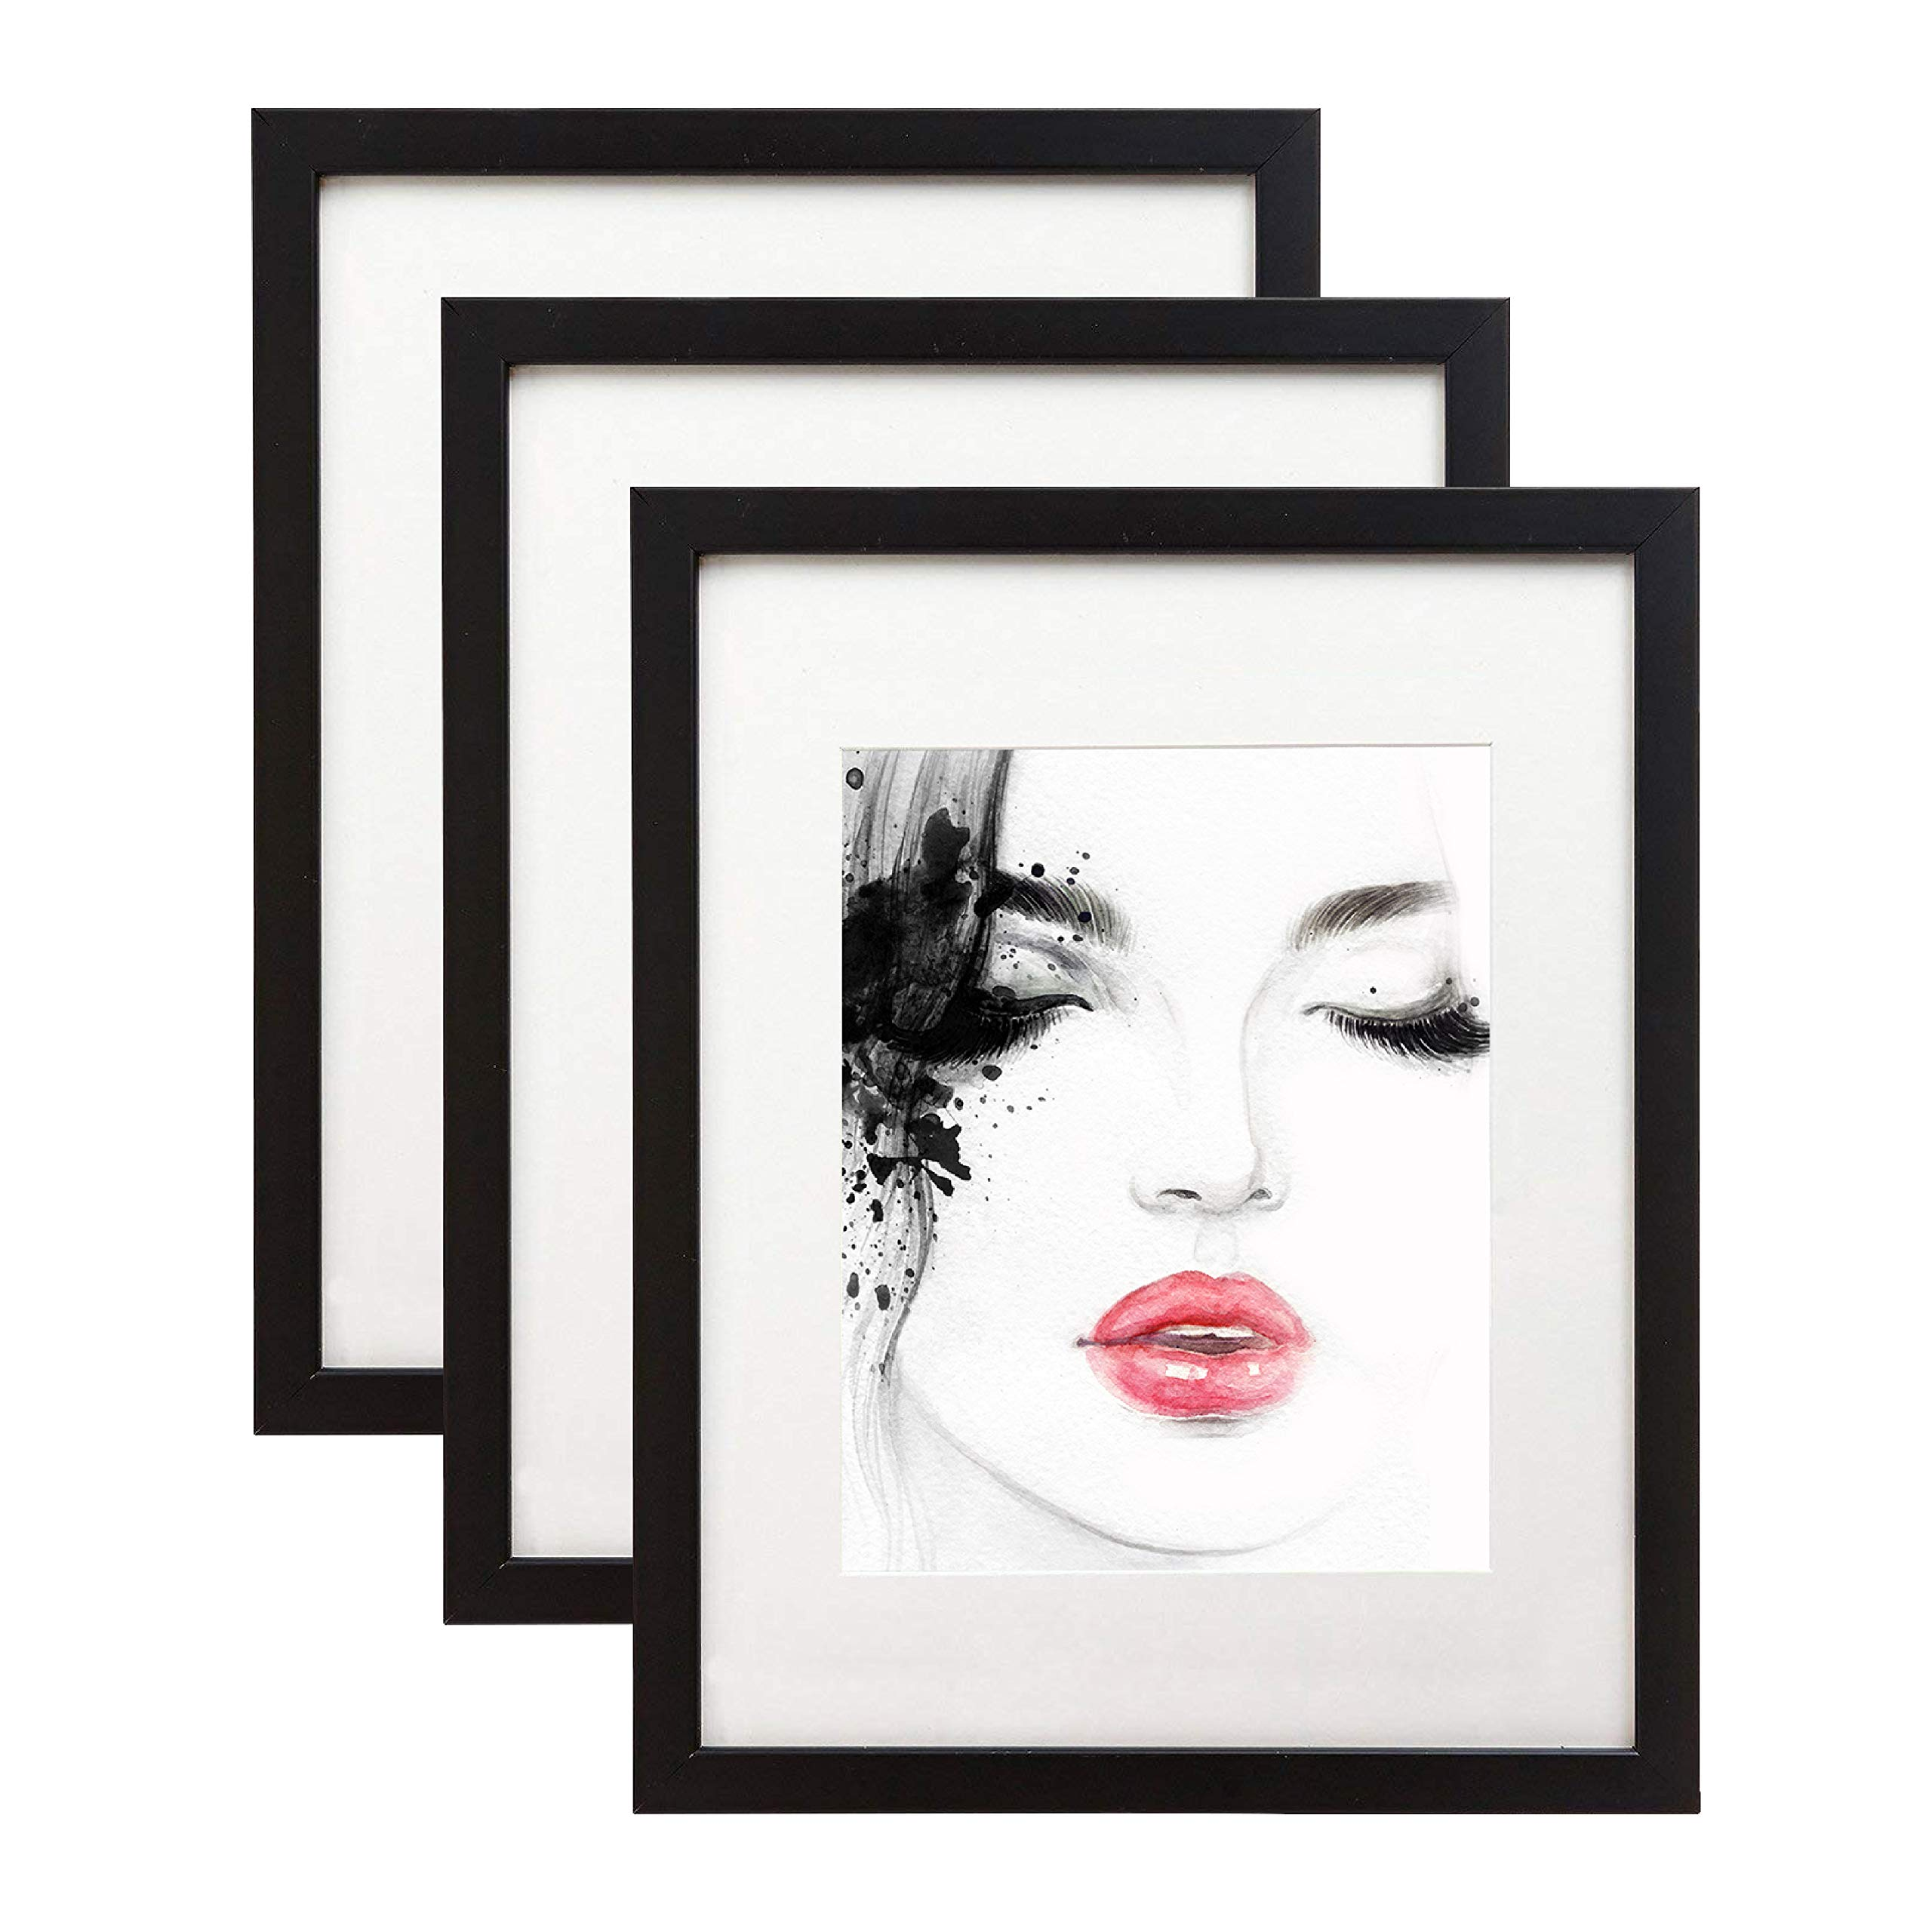 elabo 11x14 Black Picture Frame (3 Pack) - High Definition Plexiglass Display Pictures 8x10 with Mat or 11x14 Without Mat - Vertical or Horizontal Wall Mounting by elabo